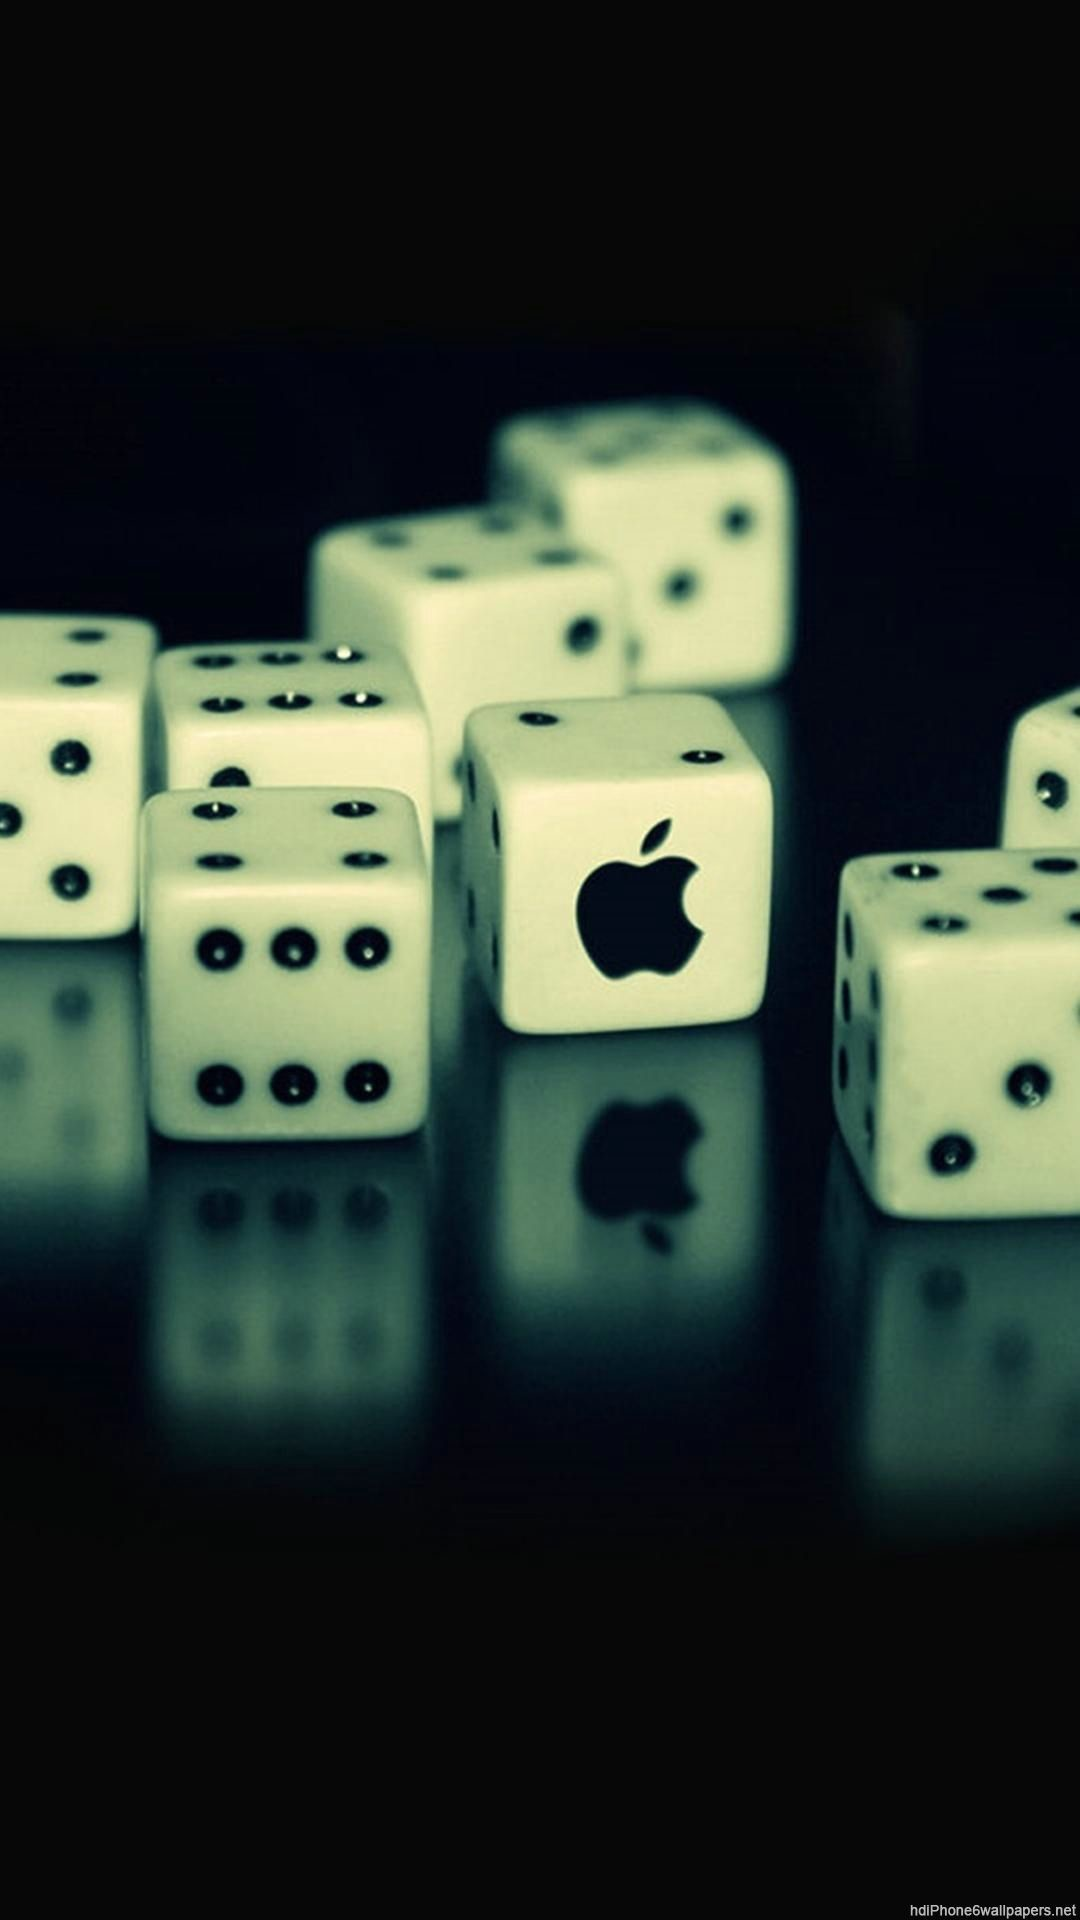 apple dice computer iPhone 6 wallpapers HD and 1080P 6 Plus Wallpapers